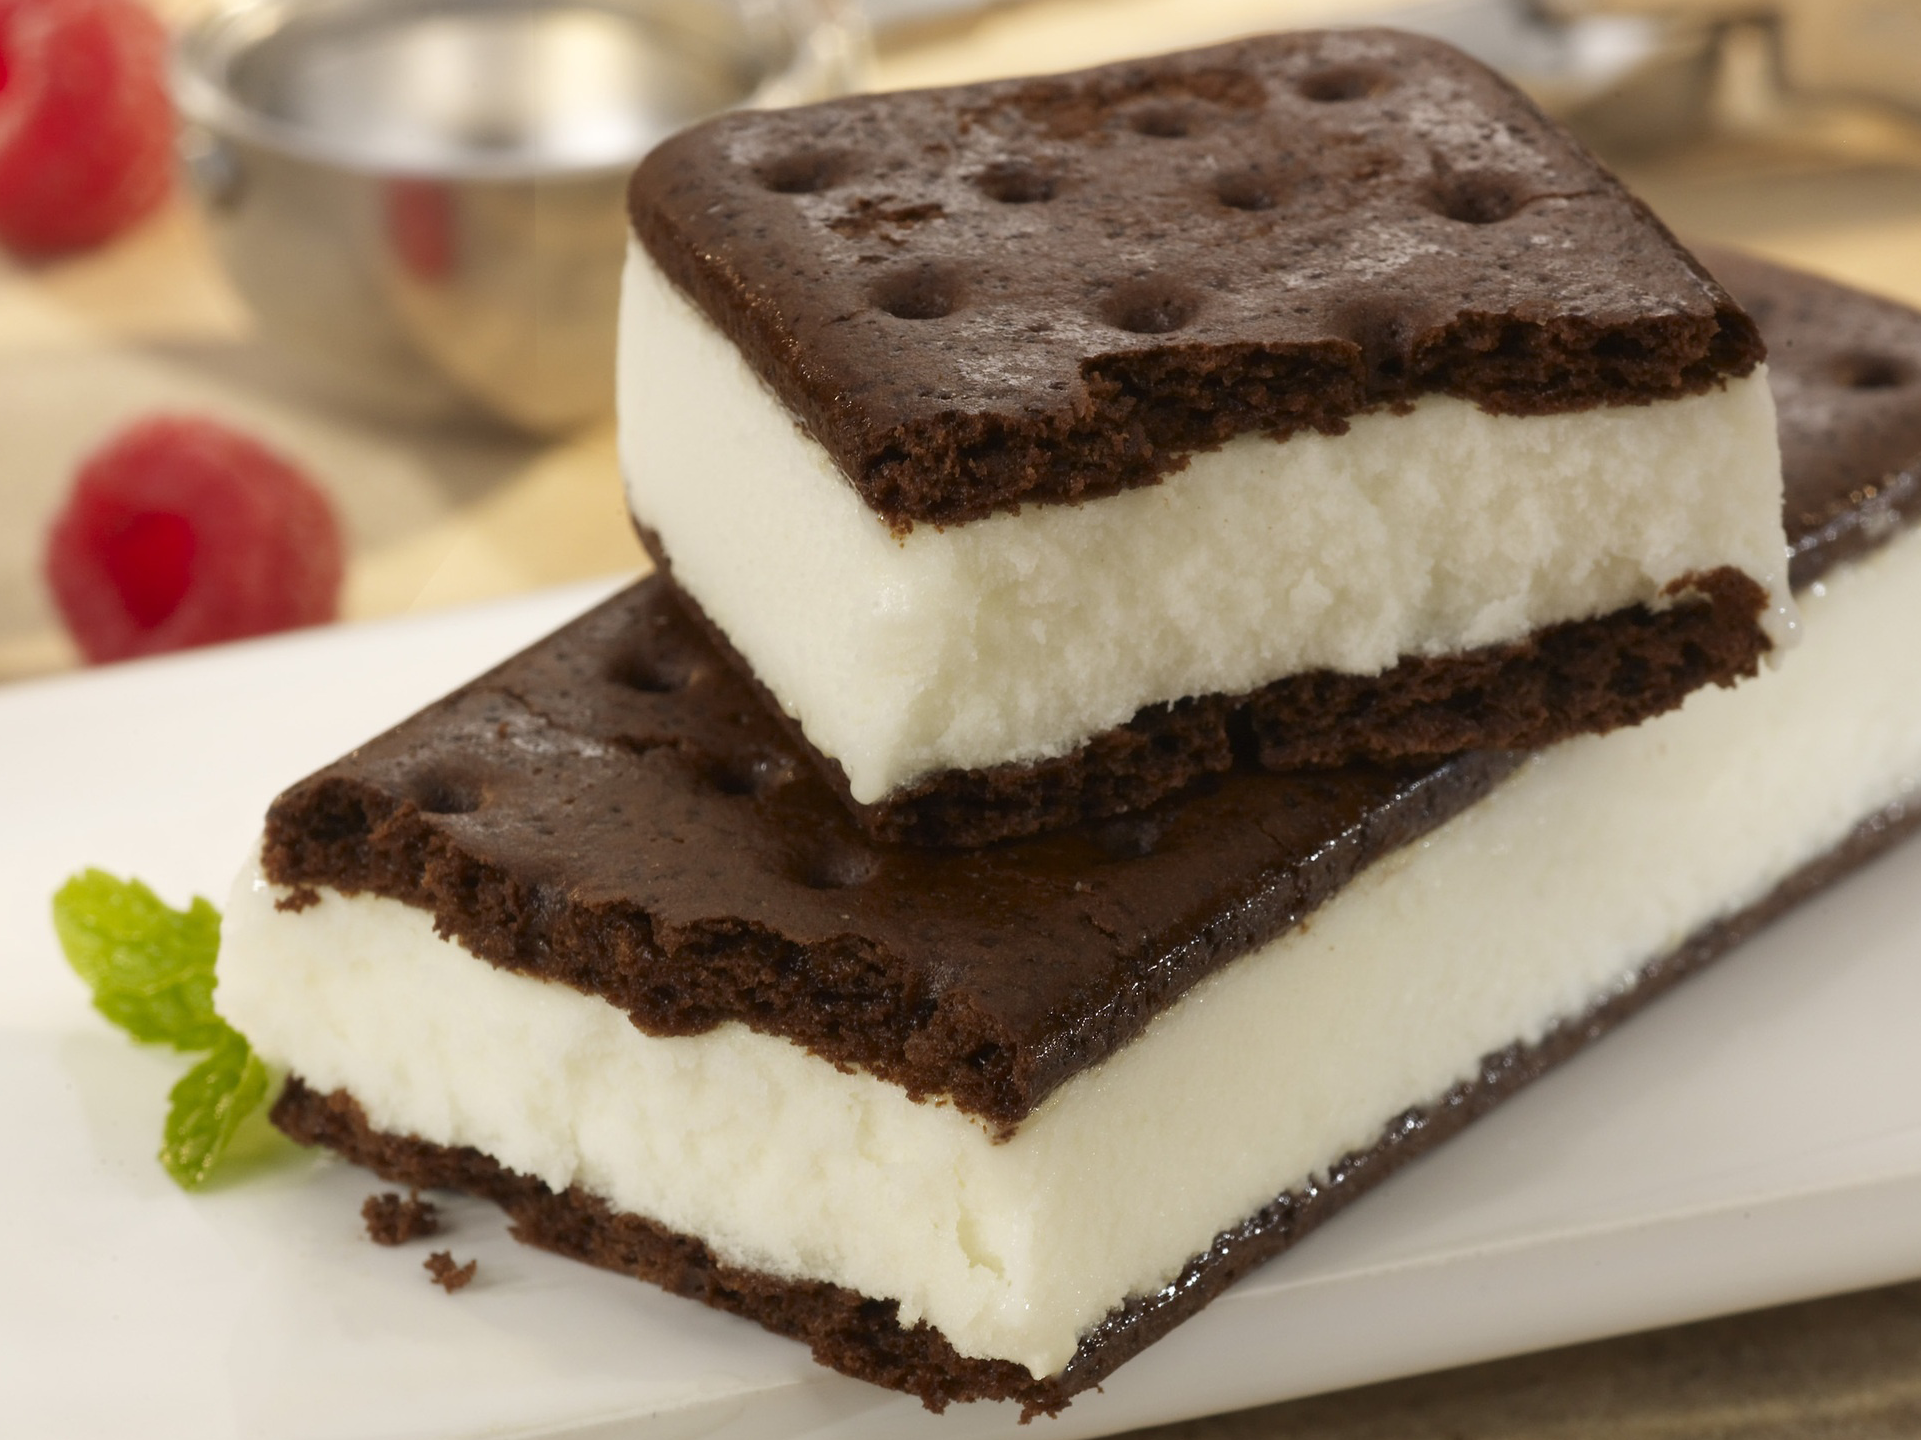 Ice Cream Sandwiches Don't Melt Because Milk Fat Is Strong Like America